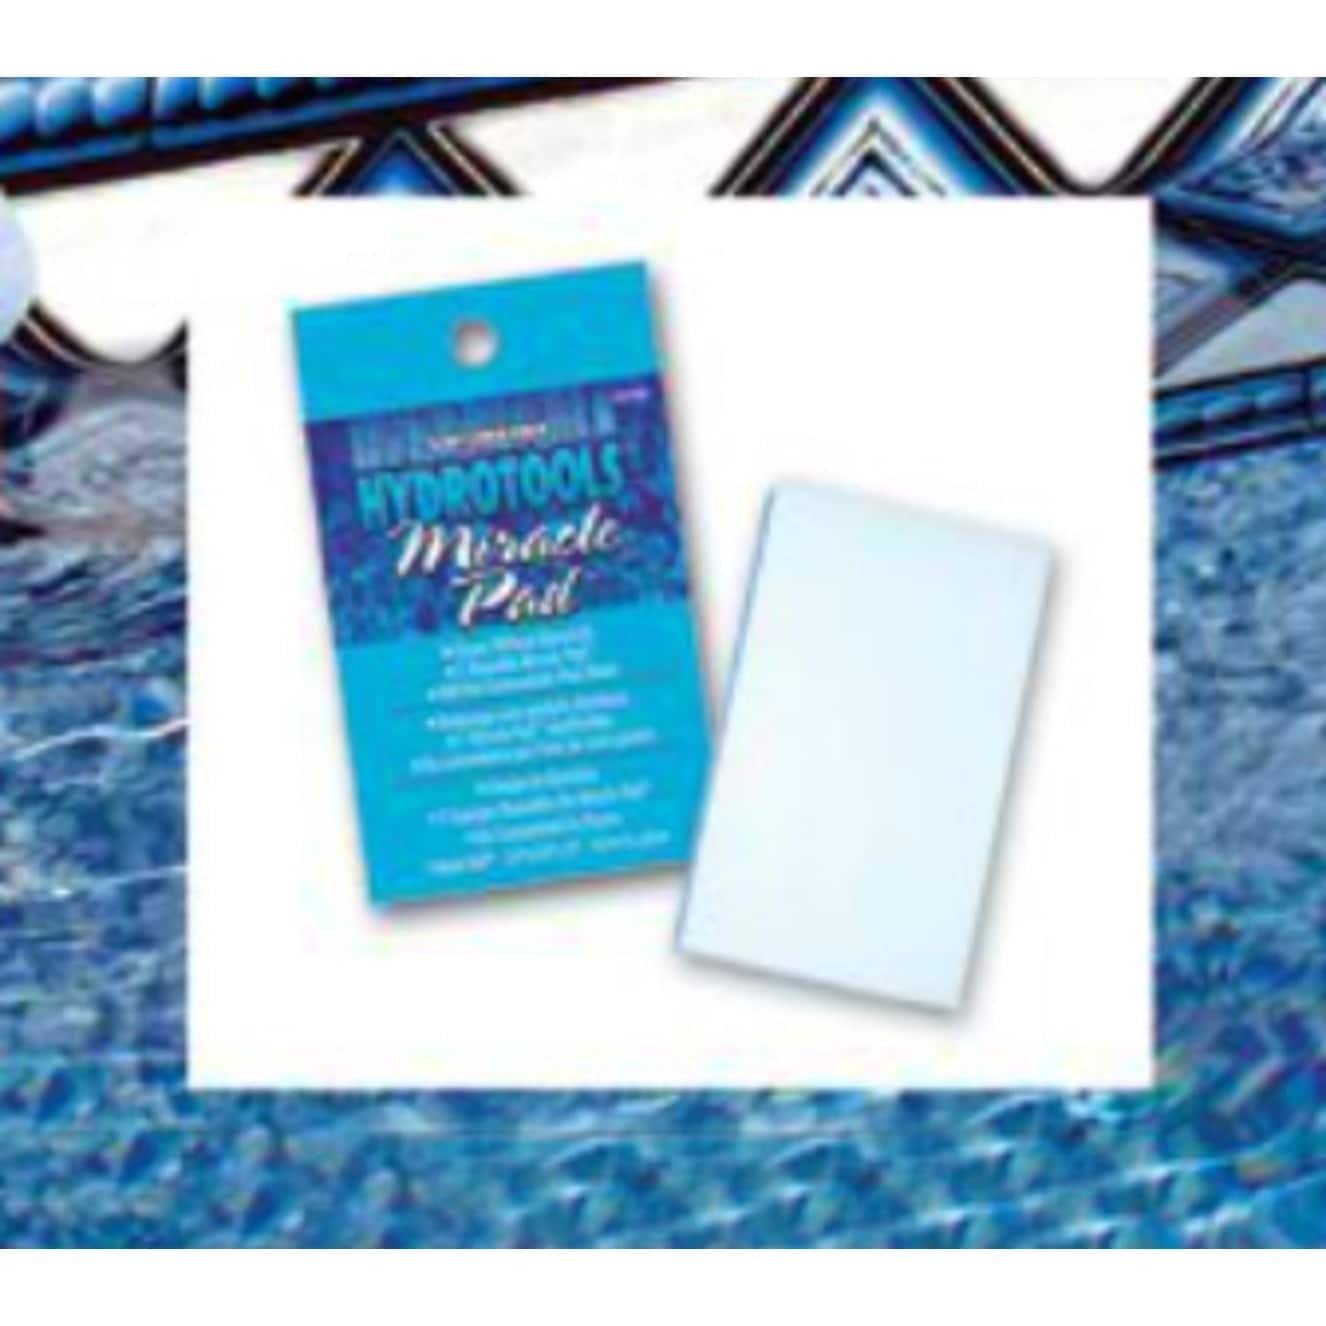 4.5 Blue HydroTools Swimming Pool and Spa Miracle Cleaning Pad - N/A